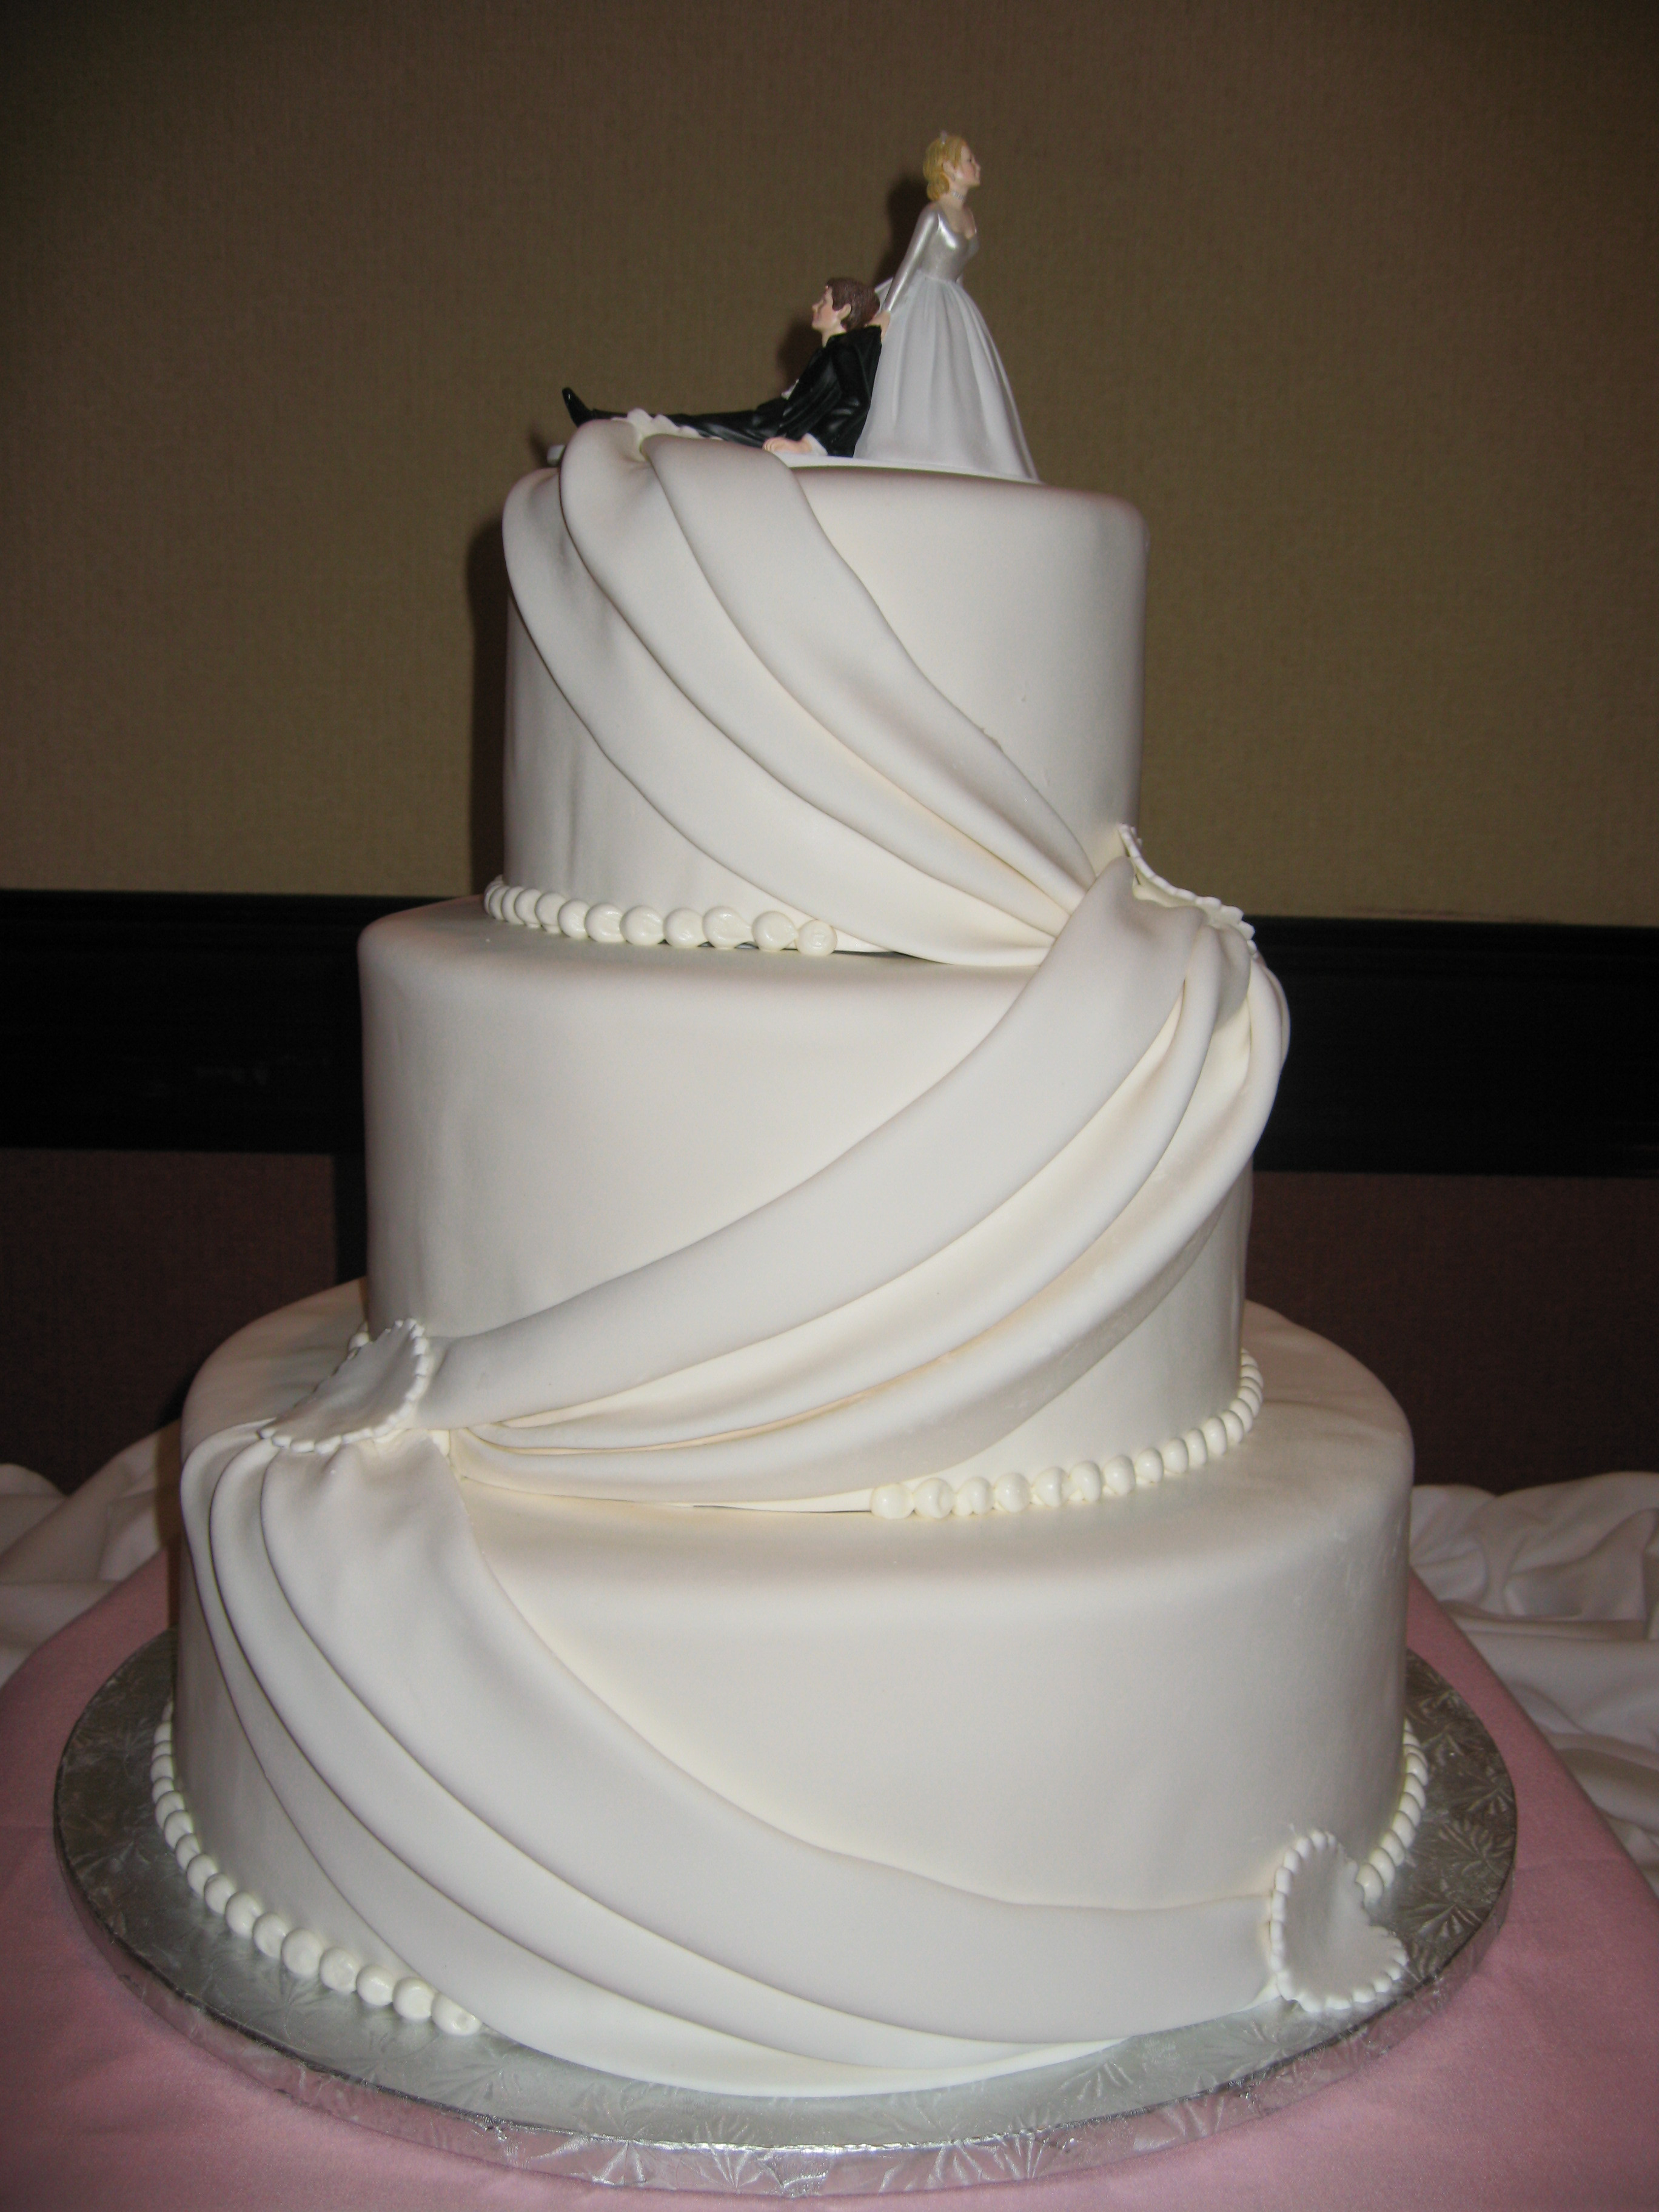 Cakes Design For Wedding  30 ULTIMATE WEDDING CAKES TO STEAL THE SHOW